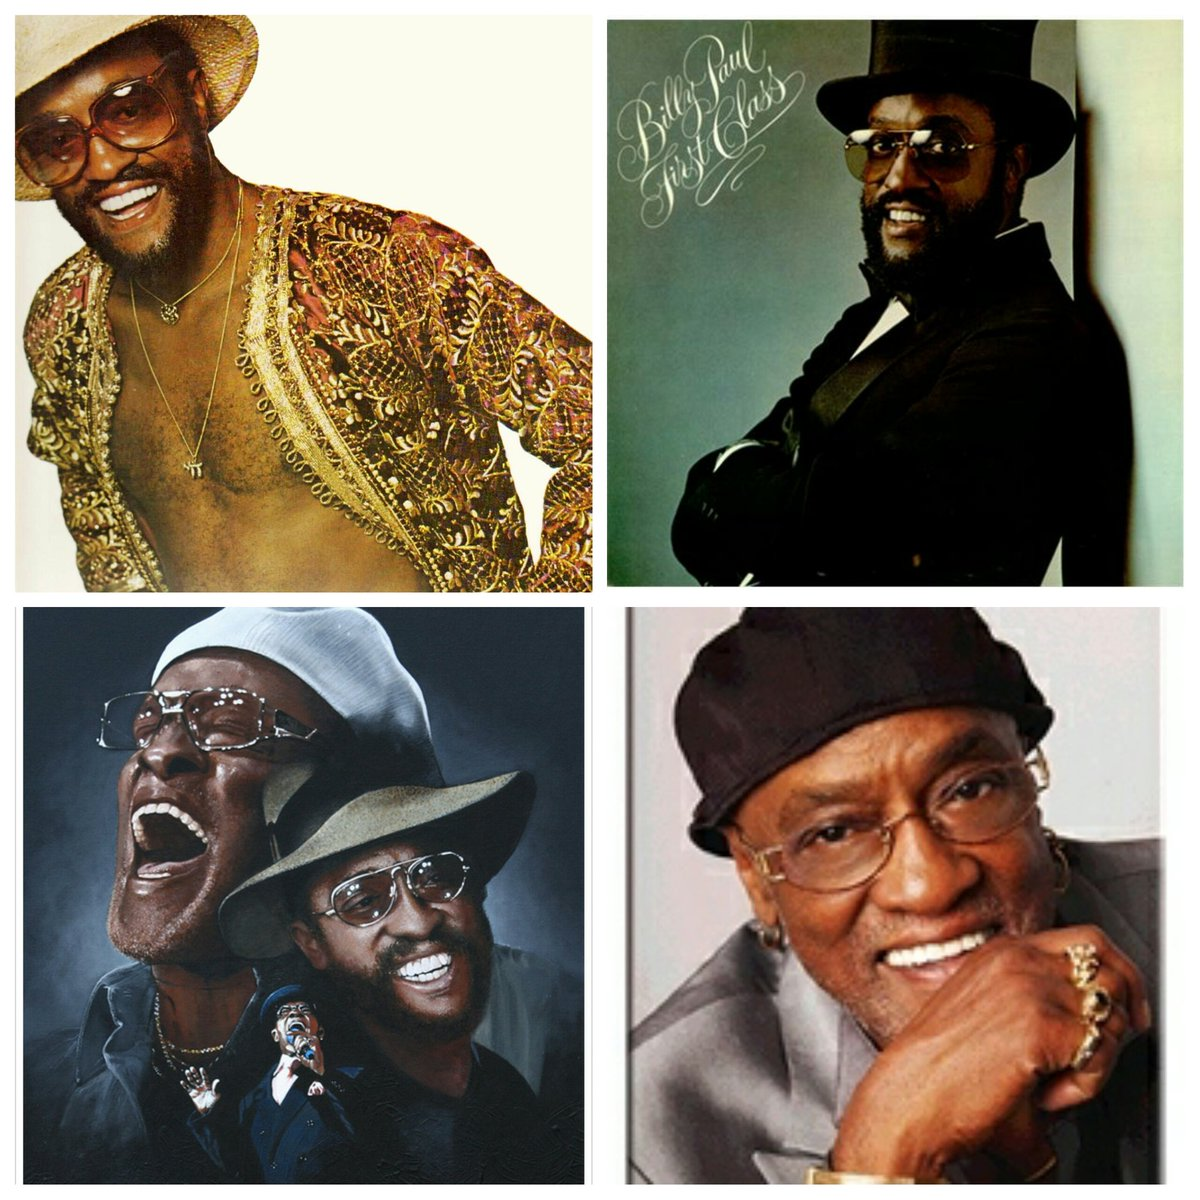 Another Legend gone! R.I.P. Singer Billy Paul #MeandMrsJones #Billypaul #TSOP https://t.co/G9bbuOhFJe